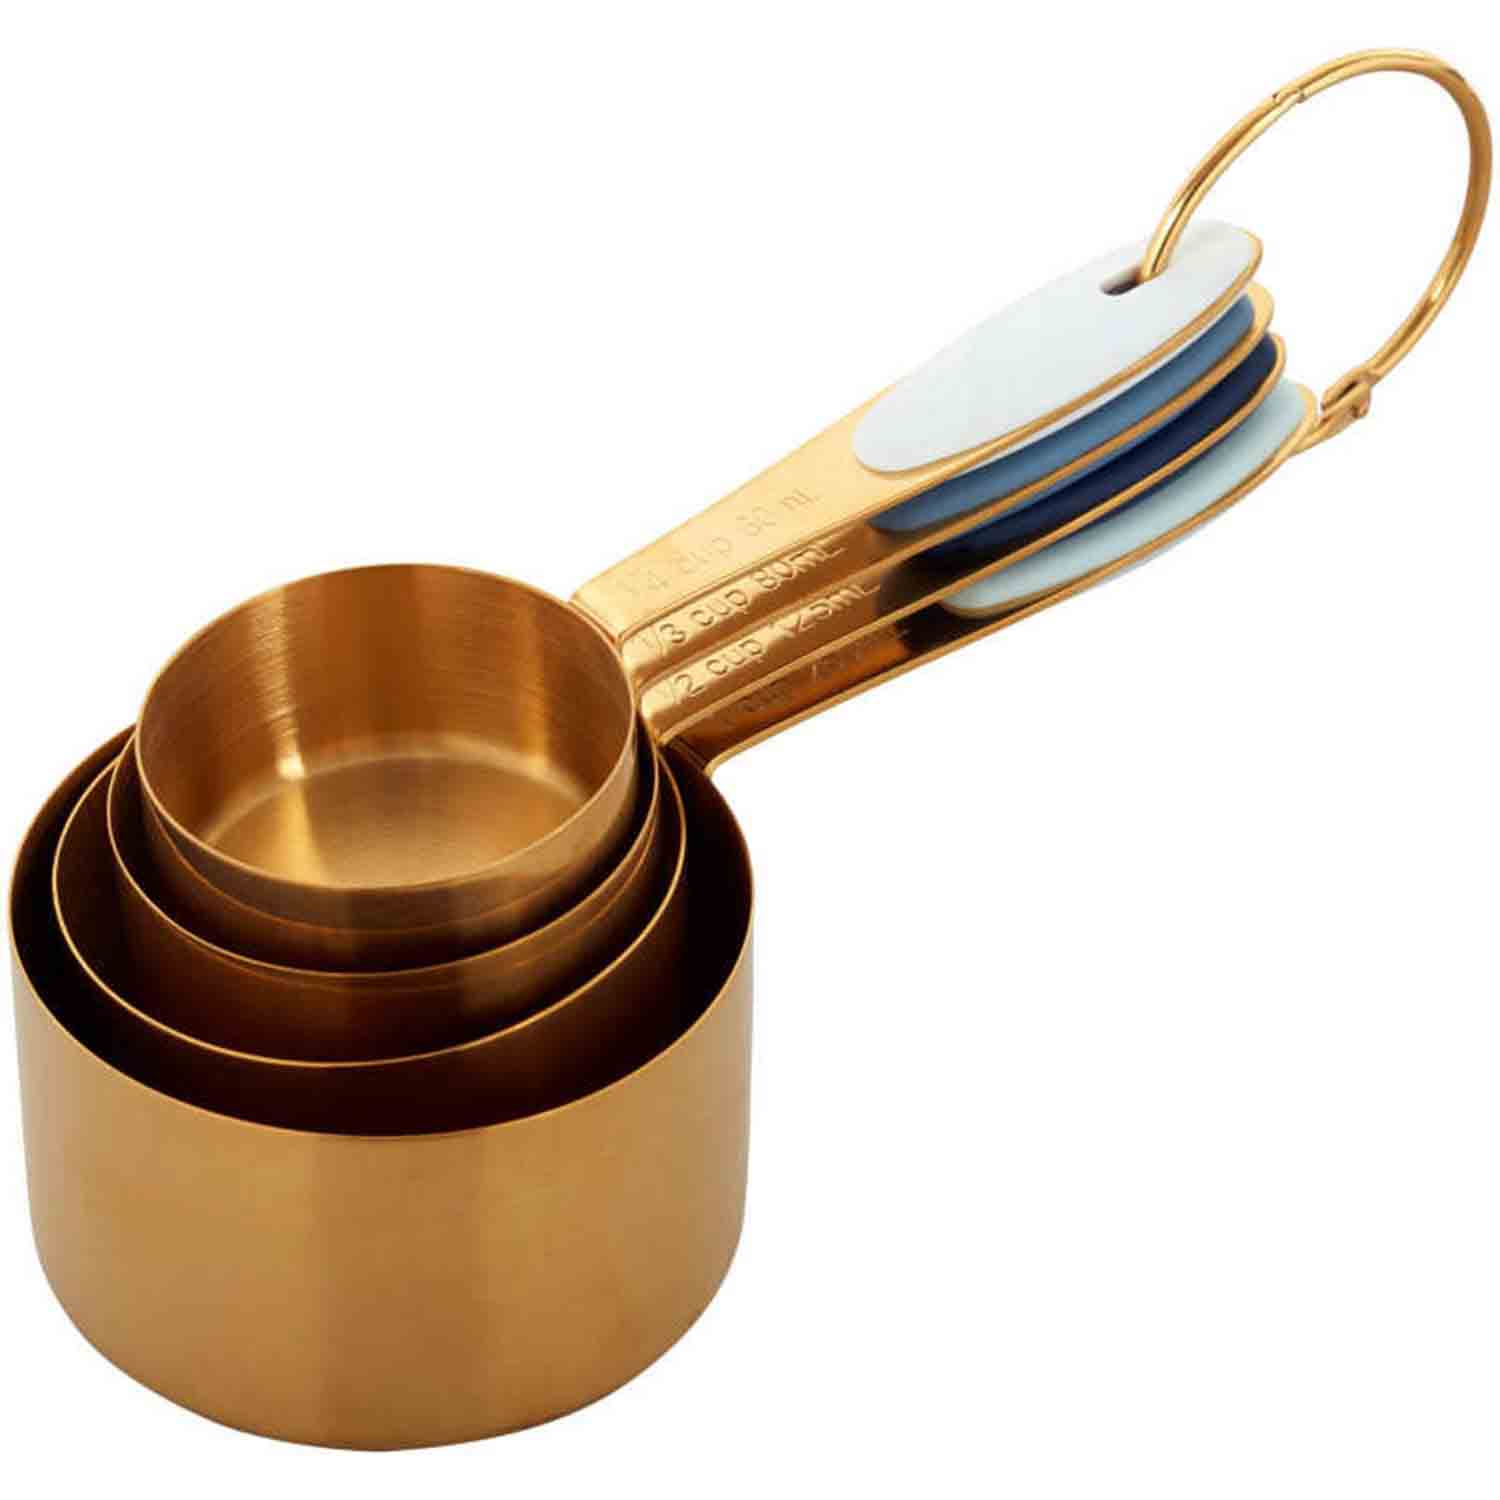 Gold Nesting Measuring Cup Set